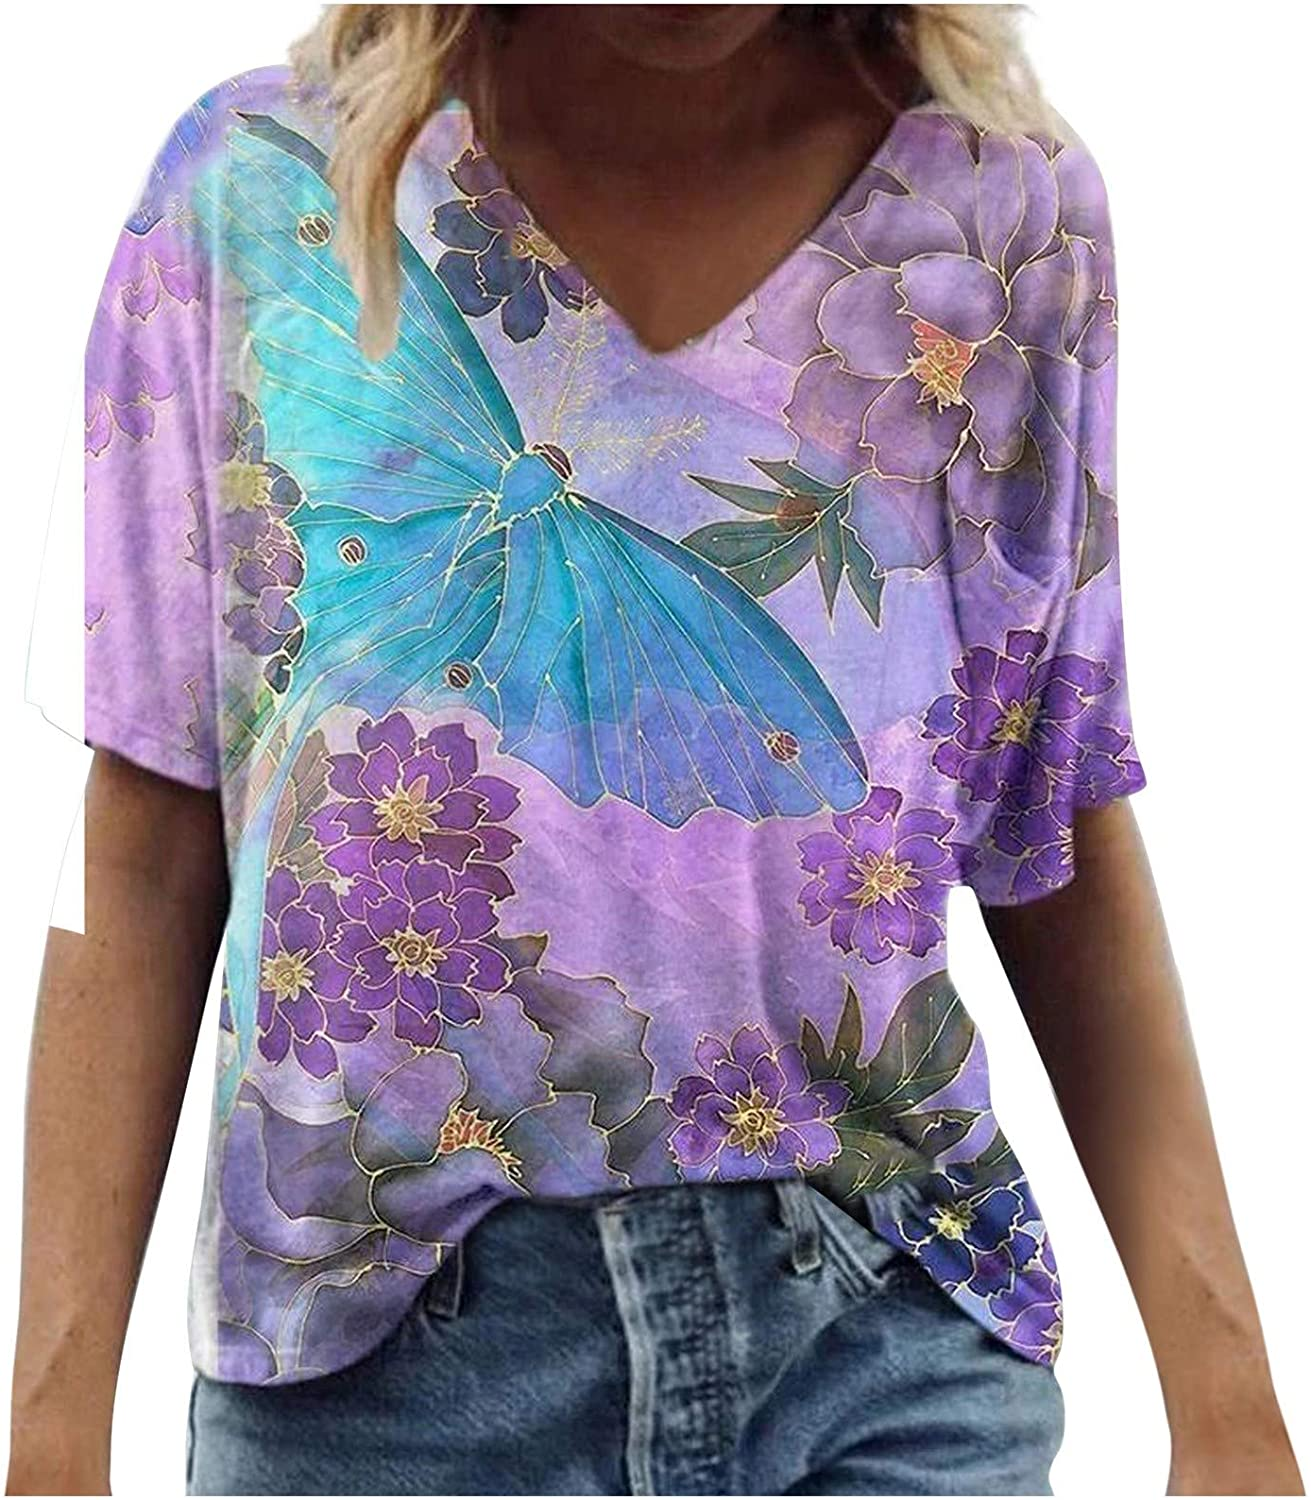 Womens Short Sleeve Tops, Summer Tops for Women Butterfly Print T-Shirt V Neck Fashion Tees Causal Tunic Blouses